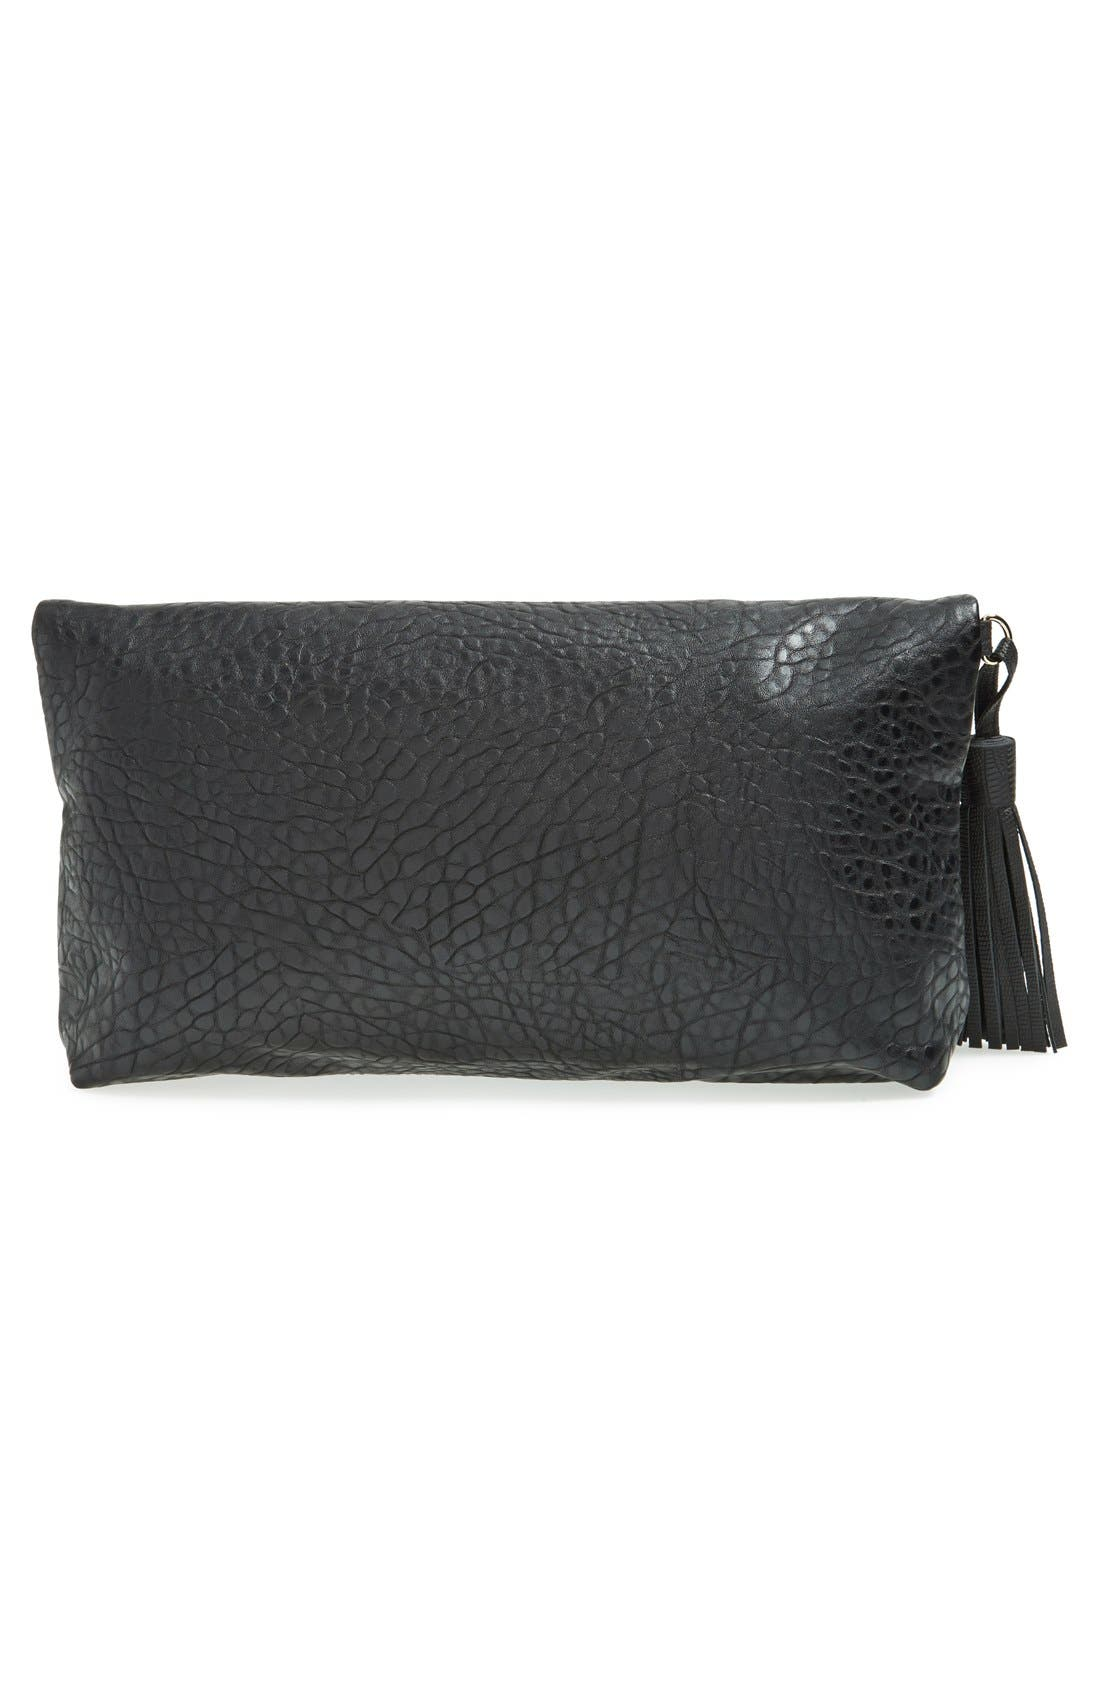 Alternate Image 3  - Topshop 'Merino' Faux Leather Foldover Clutch